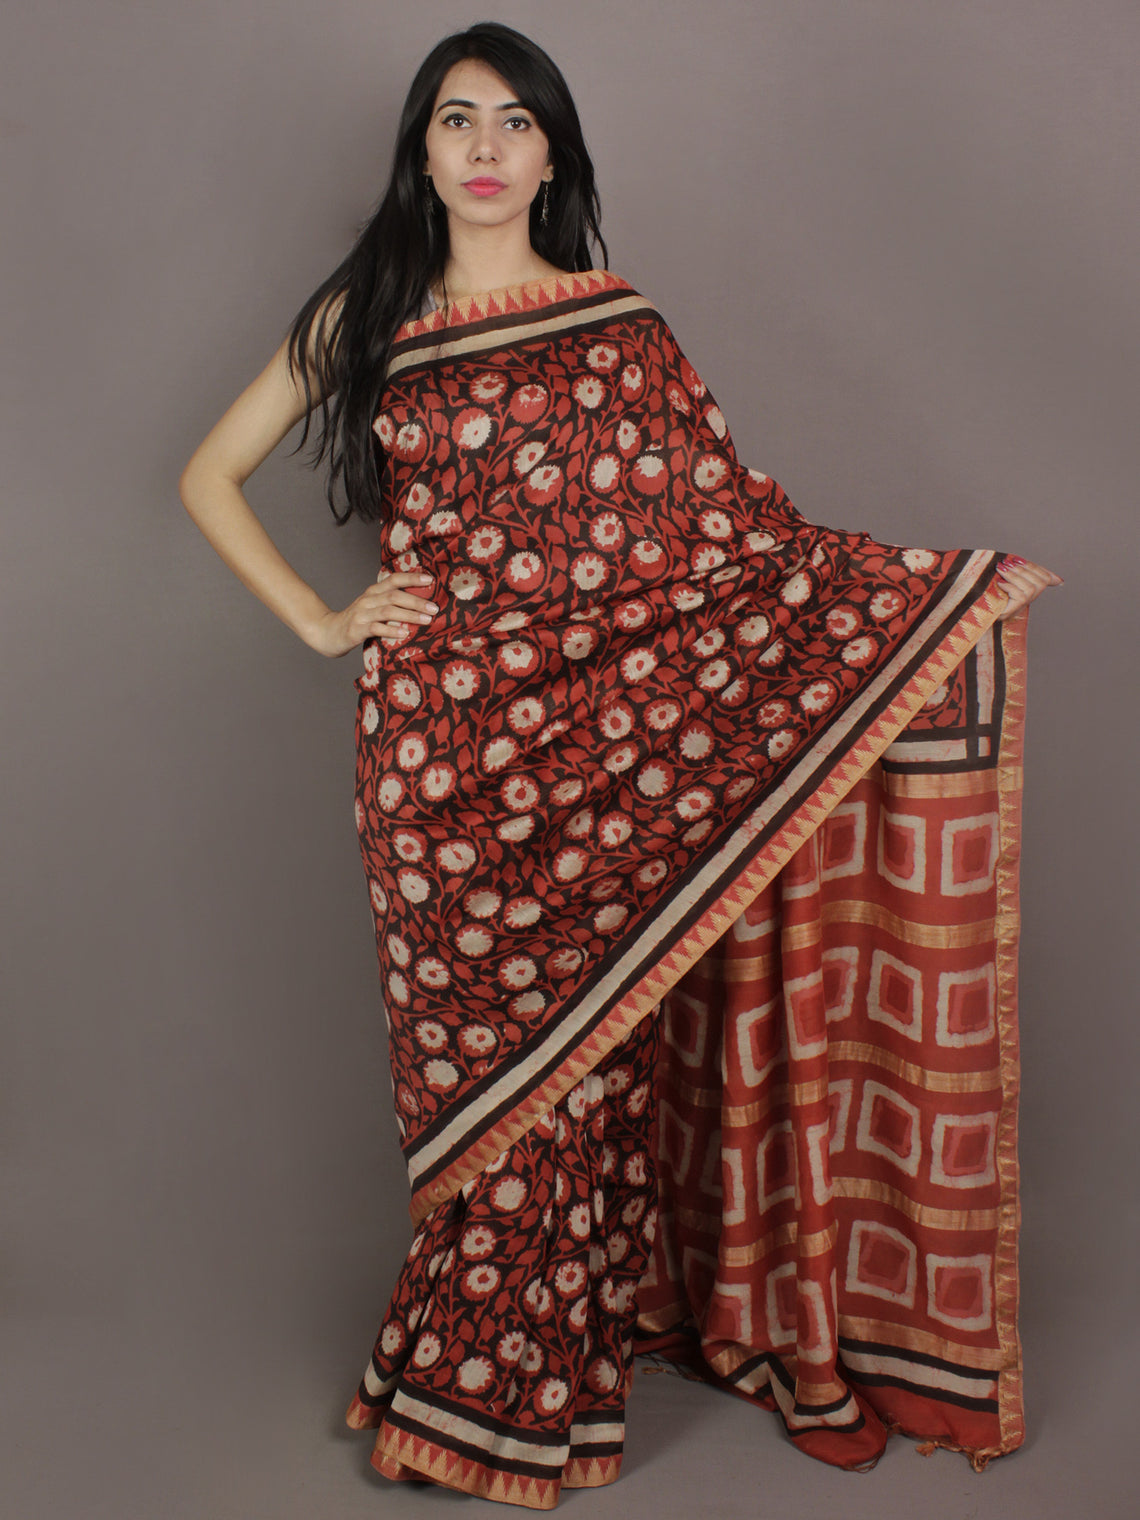 Red Black Ivory Hand Block Printed Kalamkari Chanderi Silk Saree With Ghicha Border - S031701153